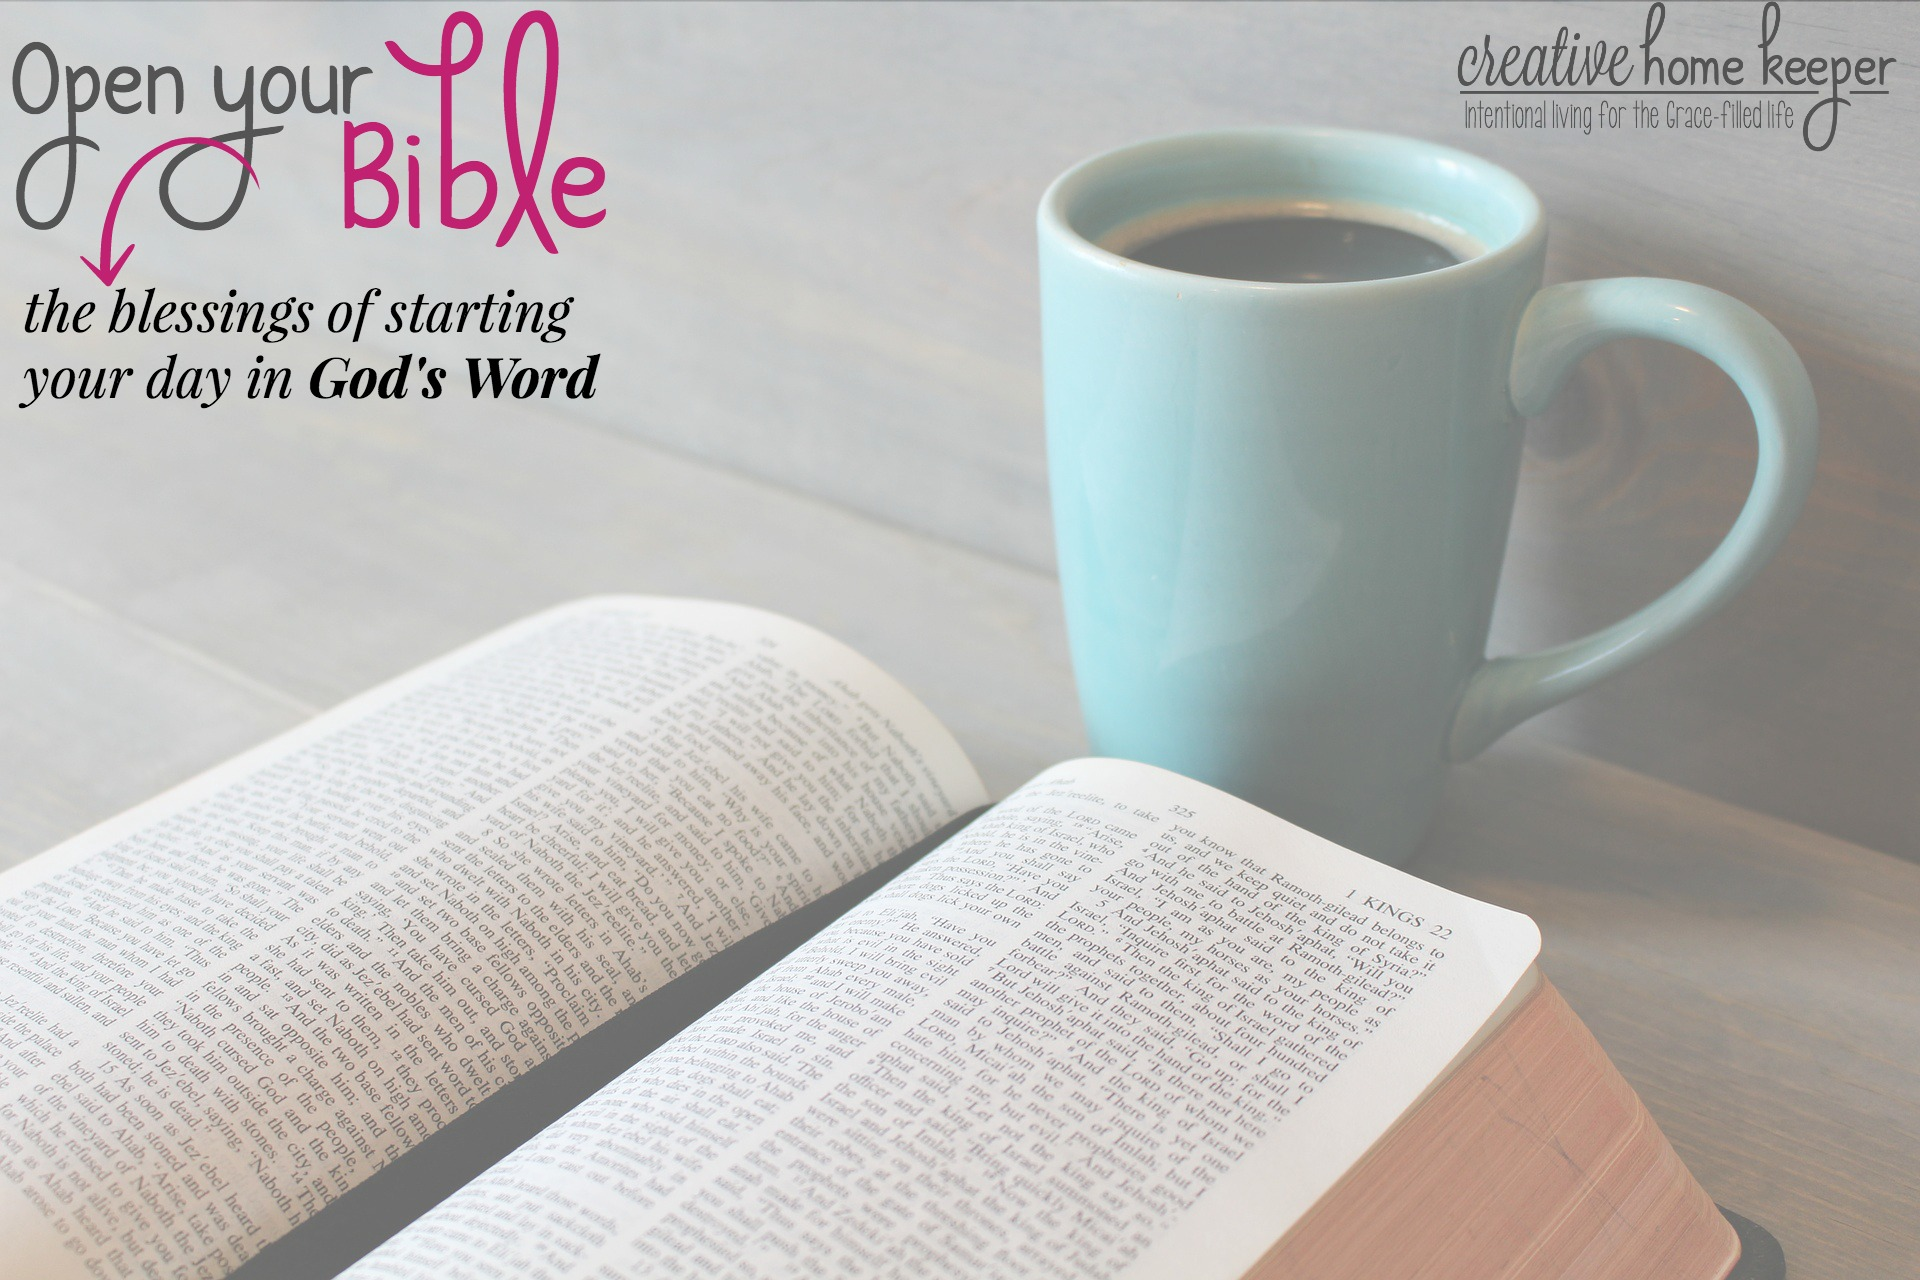 God's Word fills us up. When you open your Bible, His Word meets us where we are in our needs, our weakness, and our weariness and His provision then lifts us up.